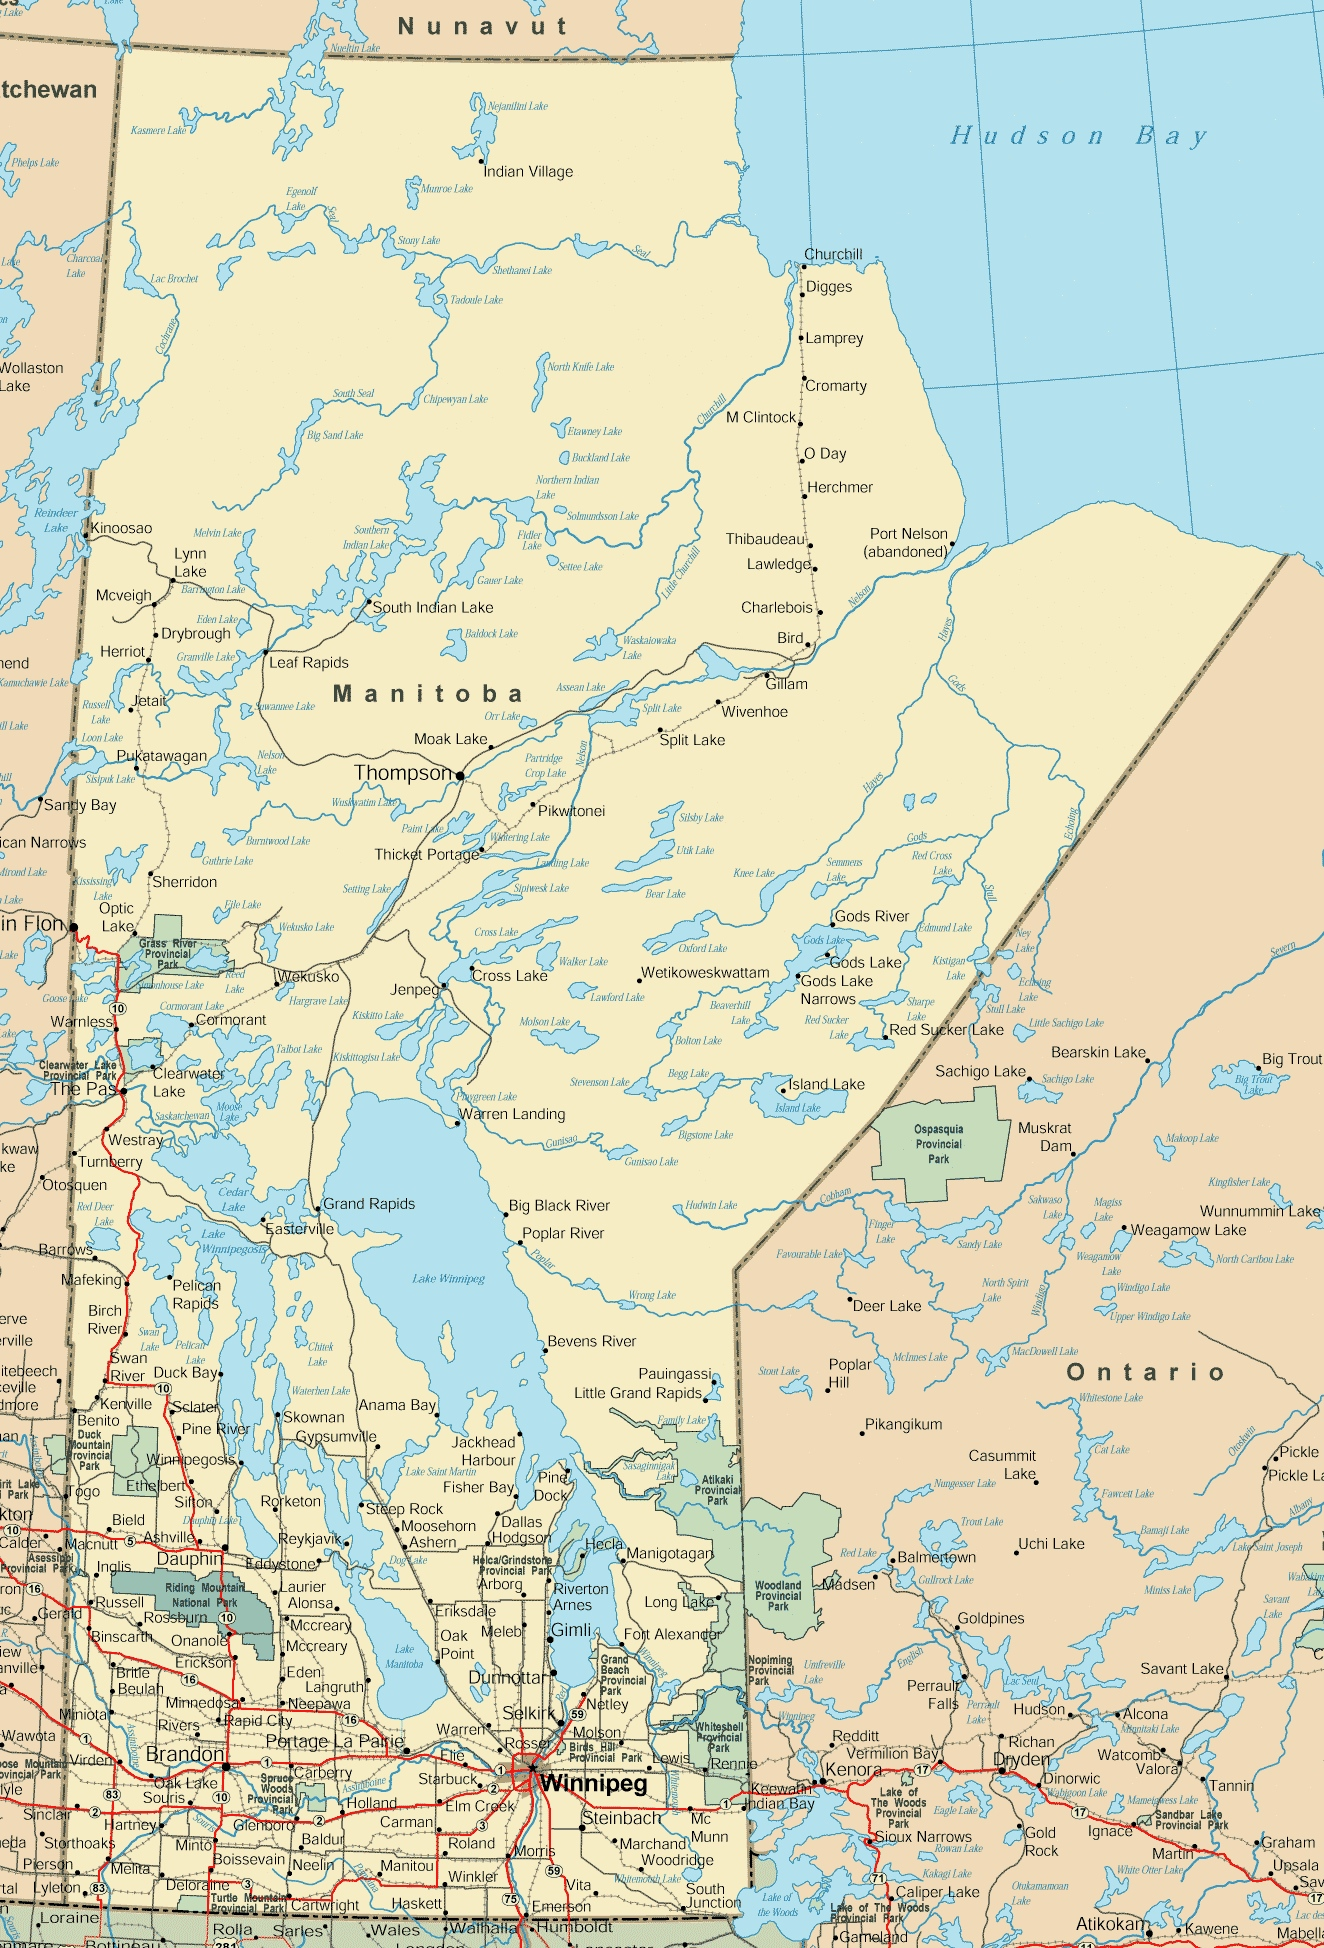 Manitoba Highway Map Manitoba road map